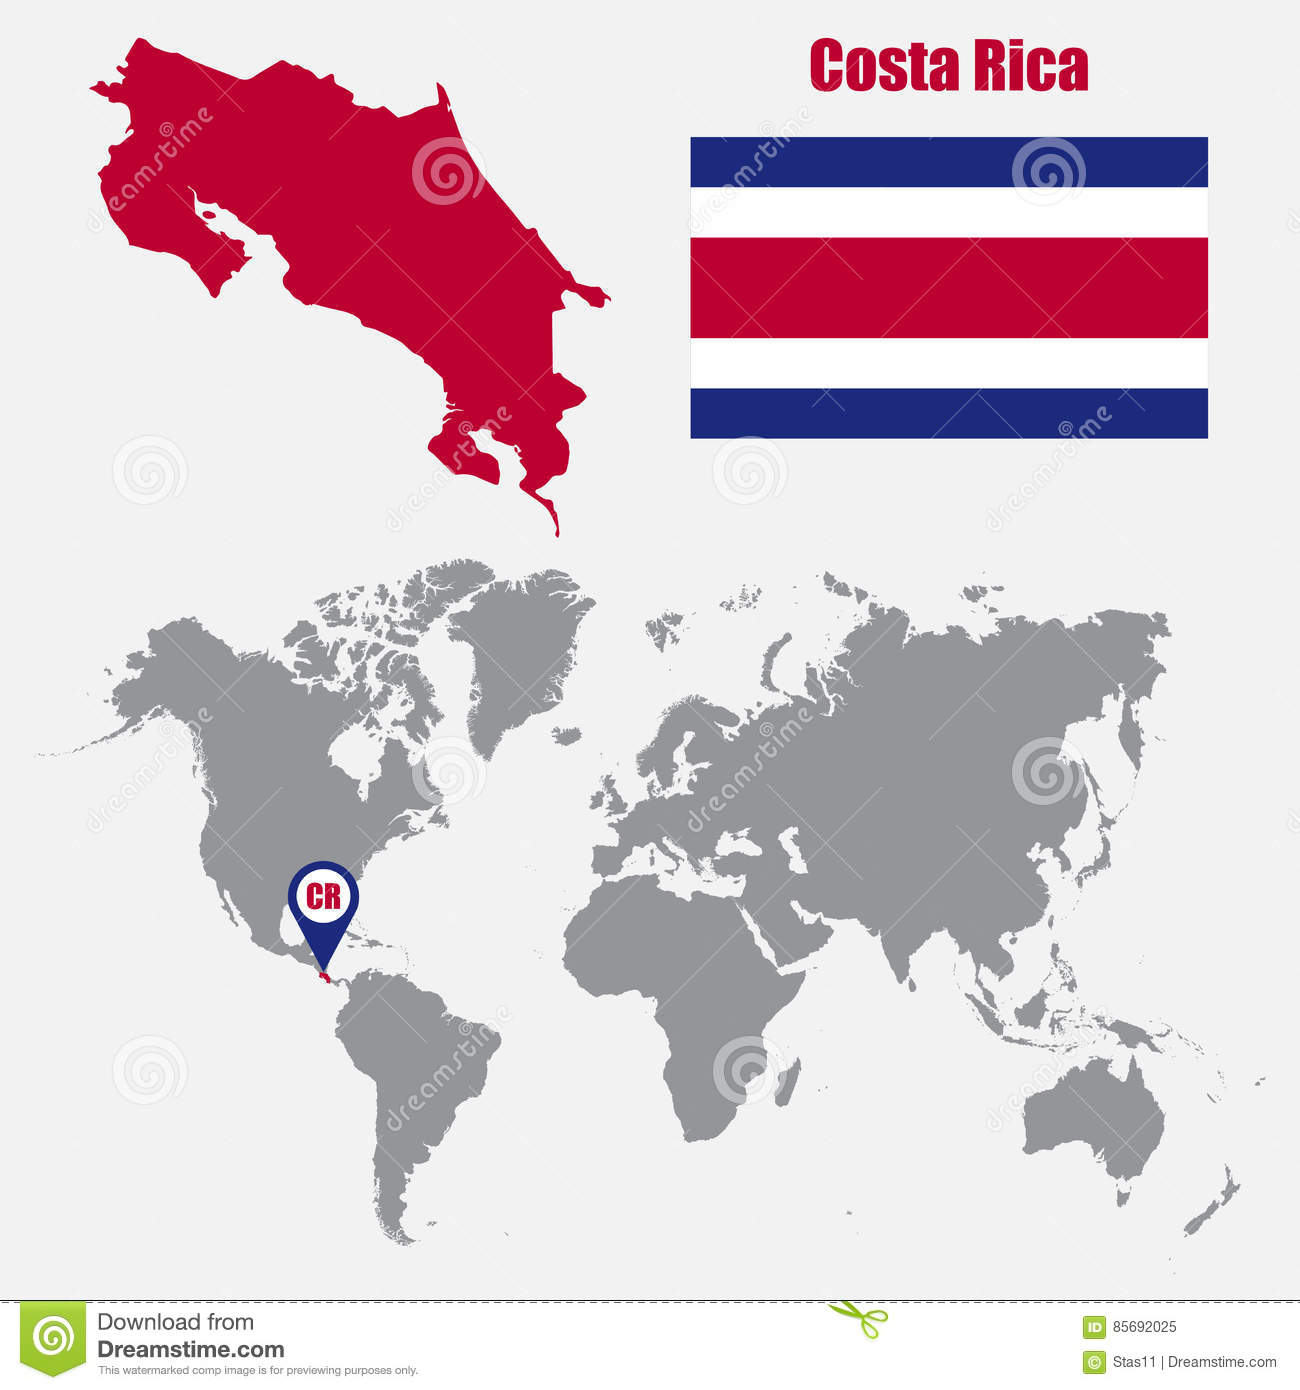 Costa Rica Map On A World Map With Flag And Map Pointer ... on world map peru, world map croatia, world map belize, world map england, world map chile, world map canada, world map guatemala, world map paraguay, world map rwanda, world map jamaica, world map honduras, world map puerto rico, world map south africa, world map guam, world time zone map, world map panama, world map new zealand, world map dubai, world map dominican republic, world map greece,